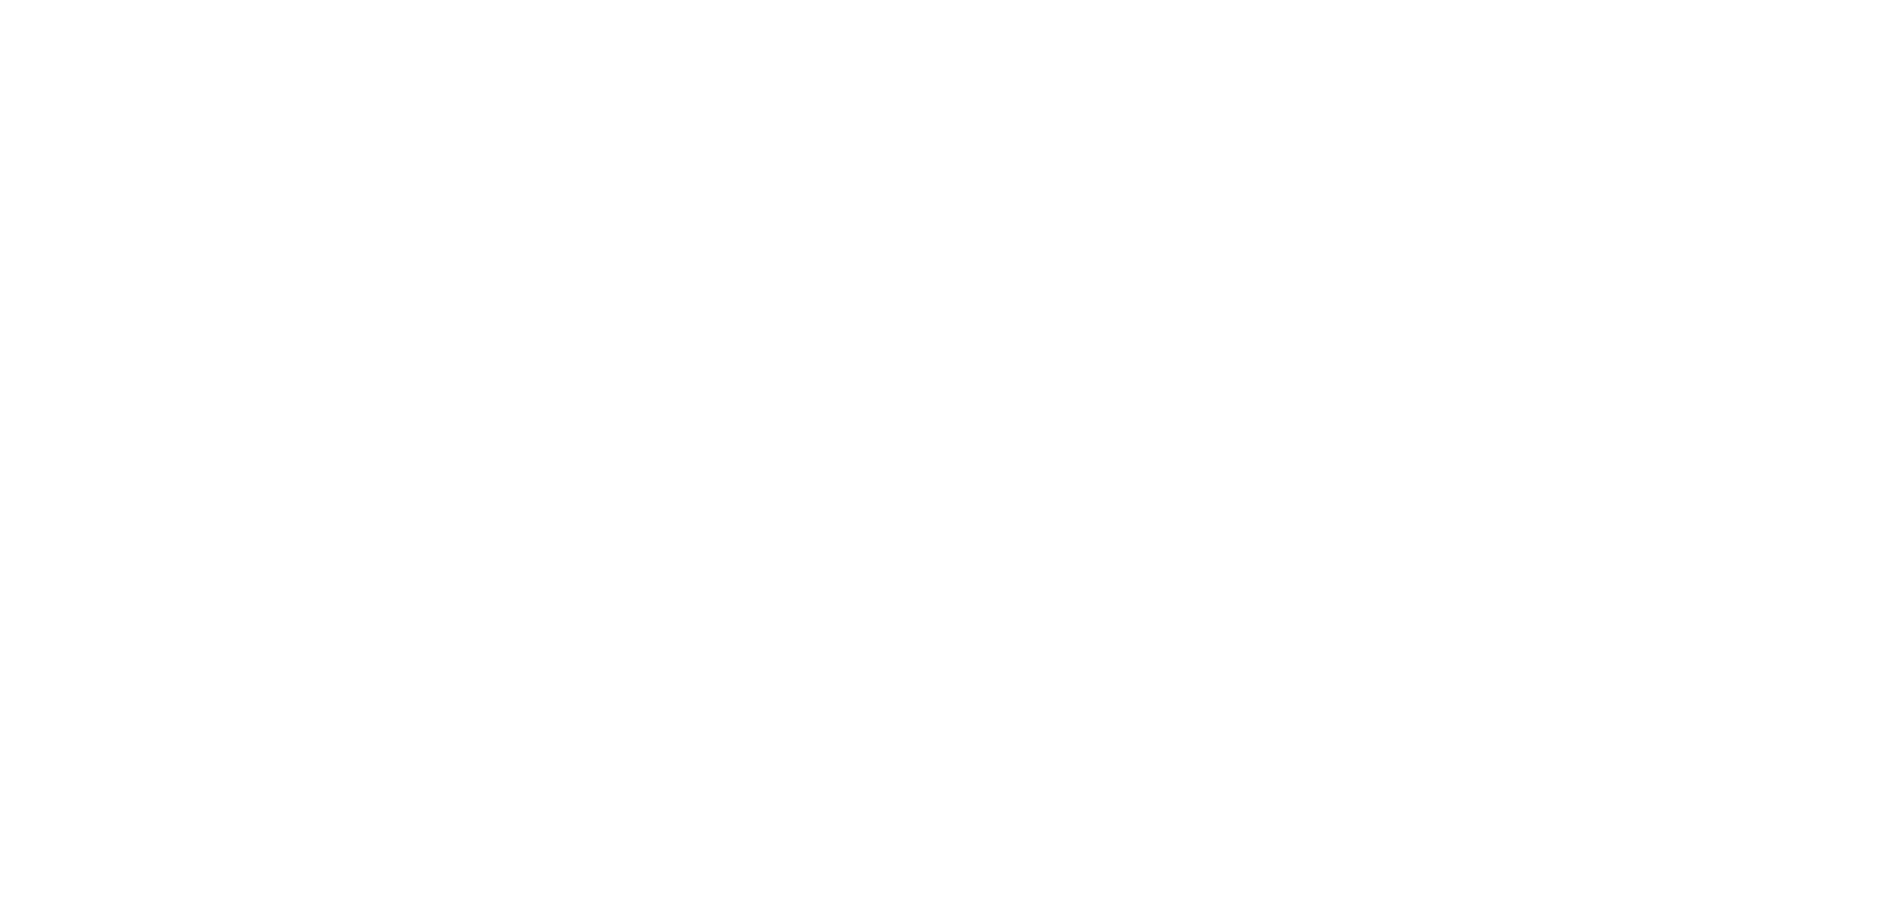 21 Alpha Group Real Estate Investment Development And Management